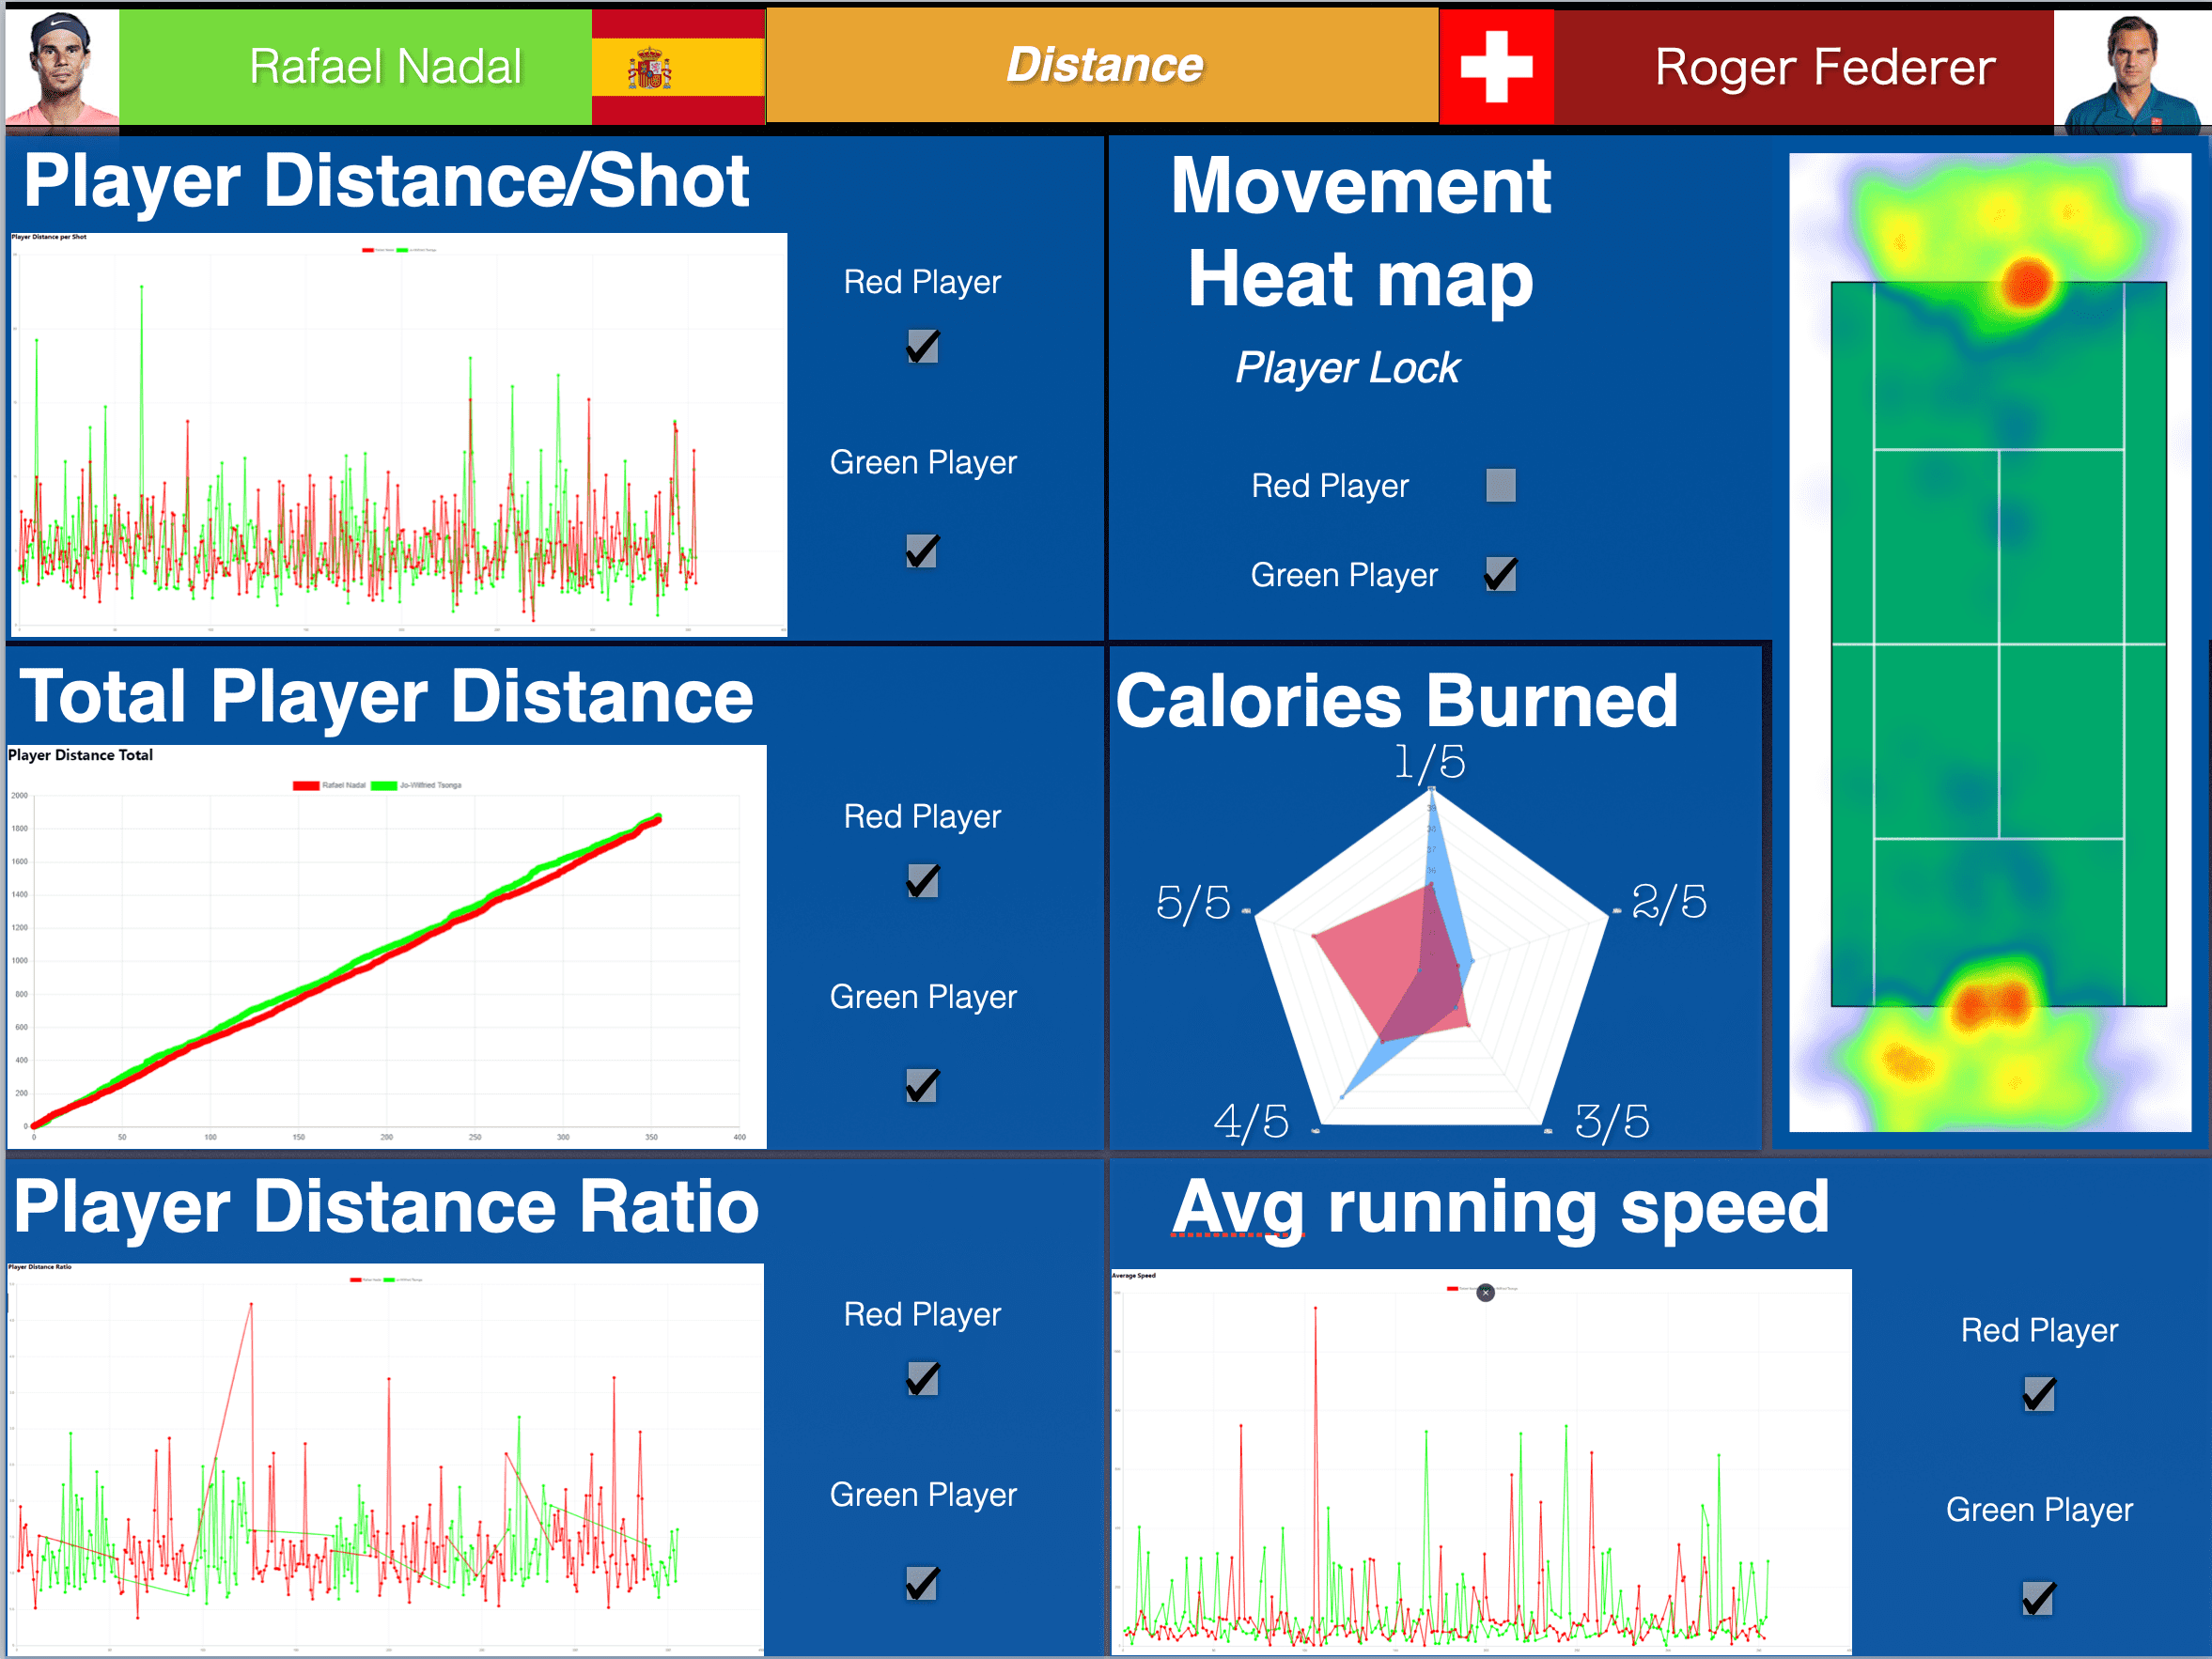 DISTANCE OVERVIEW